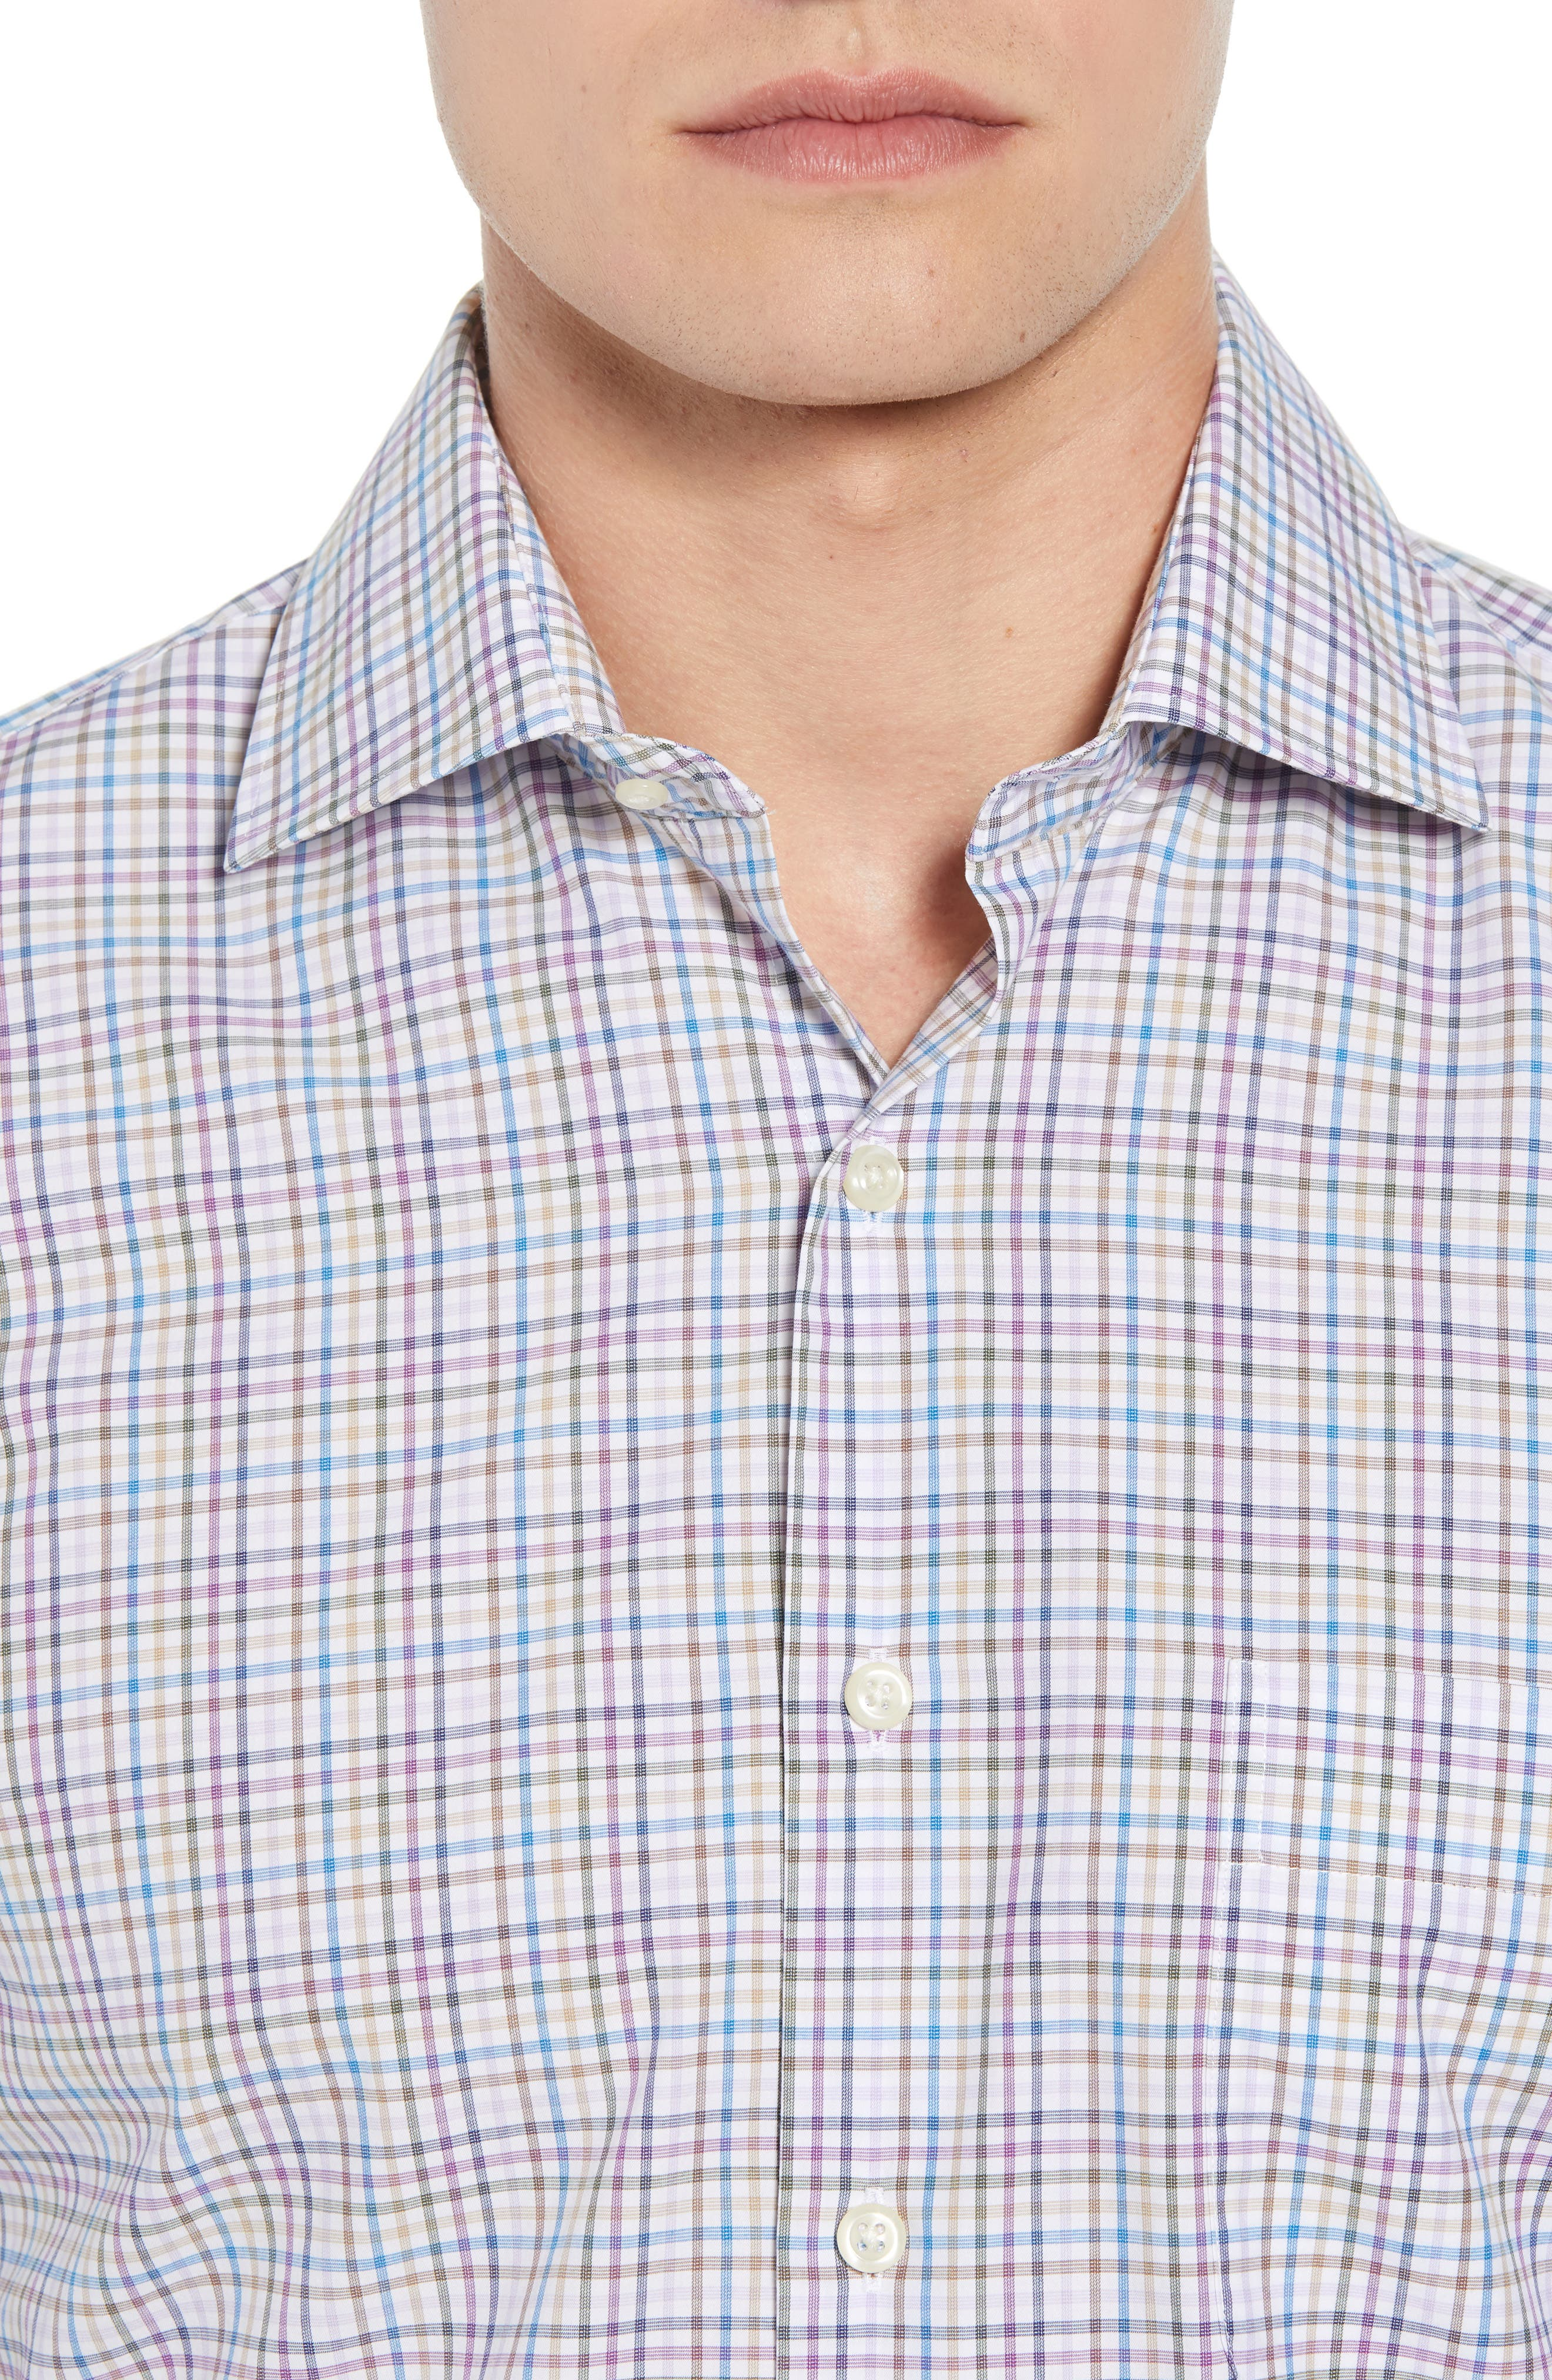 Whittier Heights Check Sport Shirt,                             Alternate thumbnail 2, color,                             BEET